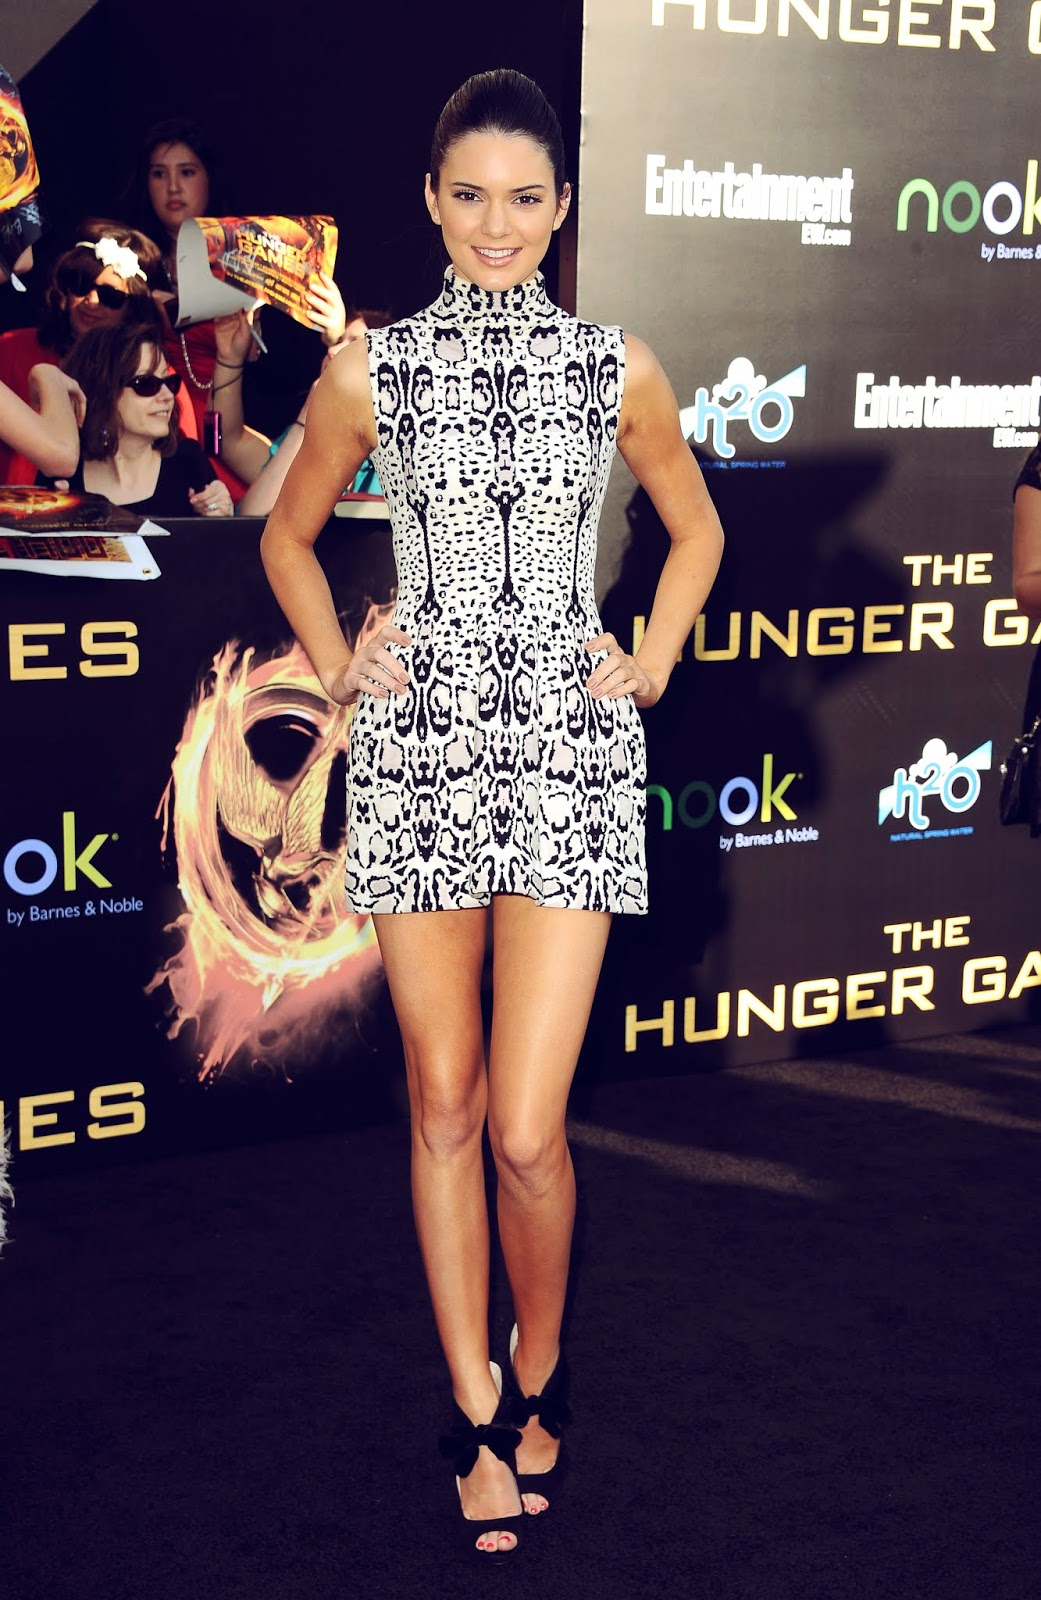 35 - At The Hunger Games Los Angeles Premiere on March 12, 2012